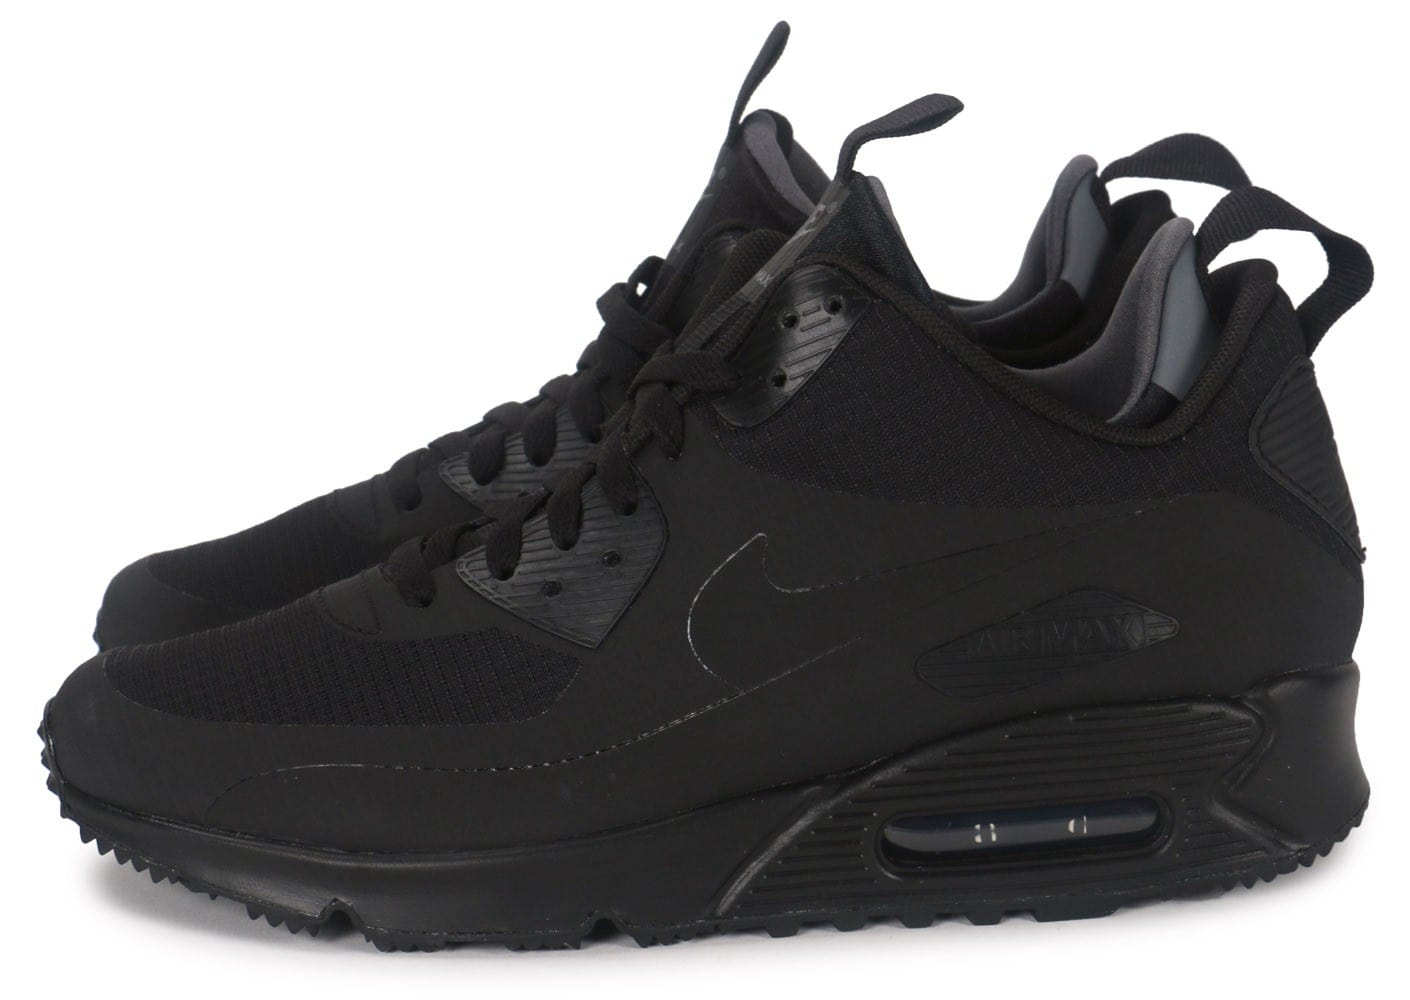 acheter populaire 07550 ed164 Nike Air Max 90 Mid Winter noir - Chaussures Baskets homme ...